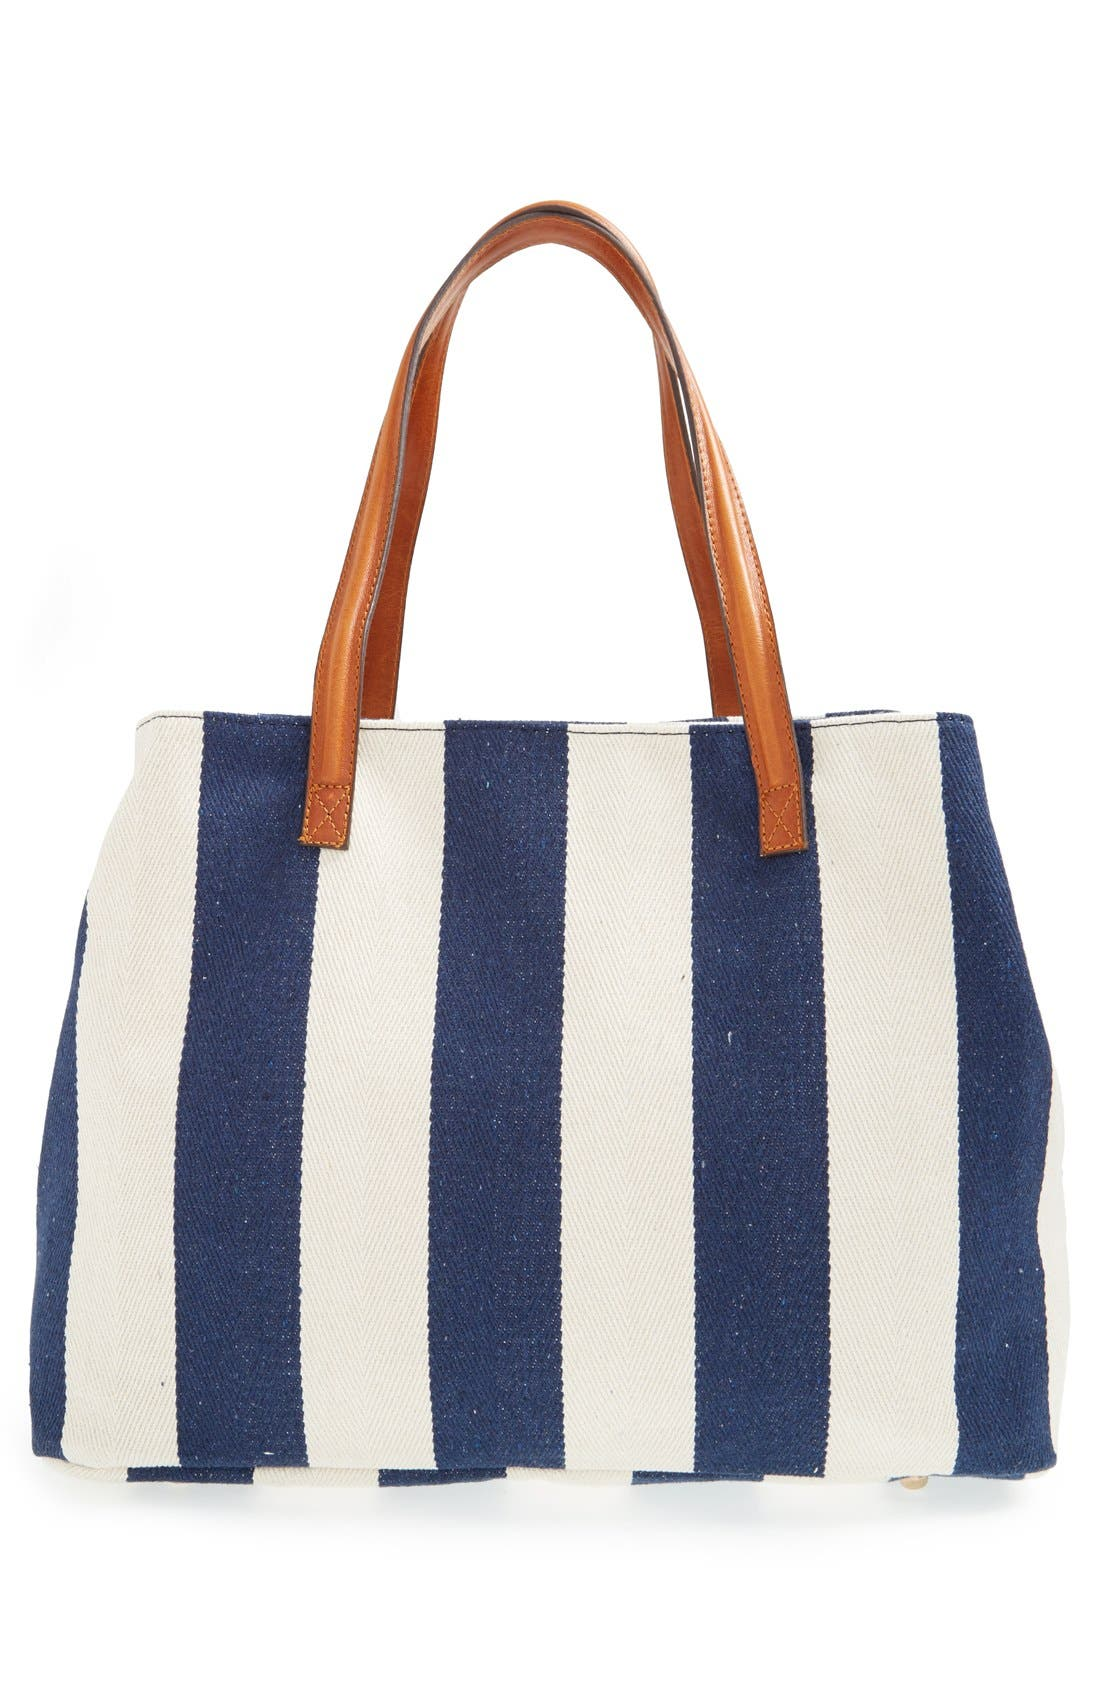 SOLE SOCIETY,                             'Oversize Millie' Stripe Print Tote,                             Alternate thumbnail 10, color,                             NAVY CREAM